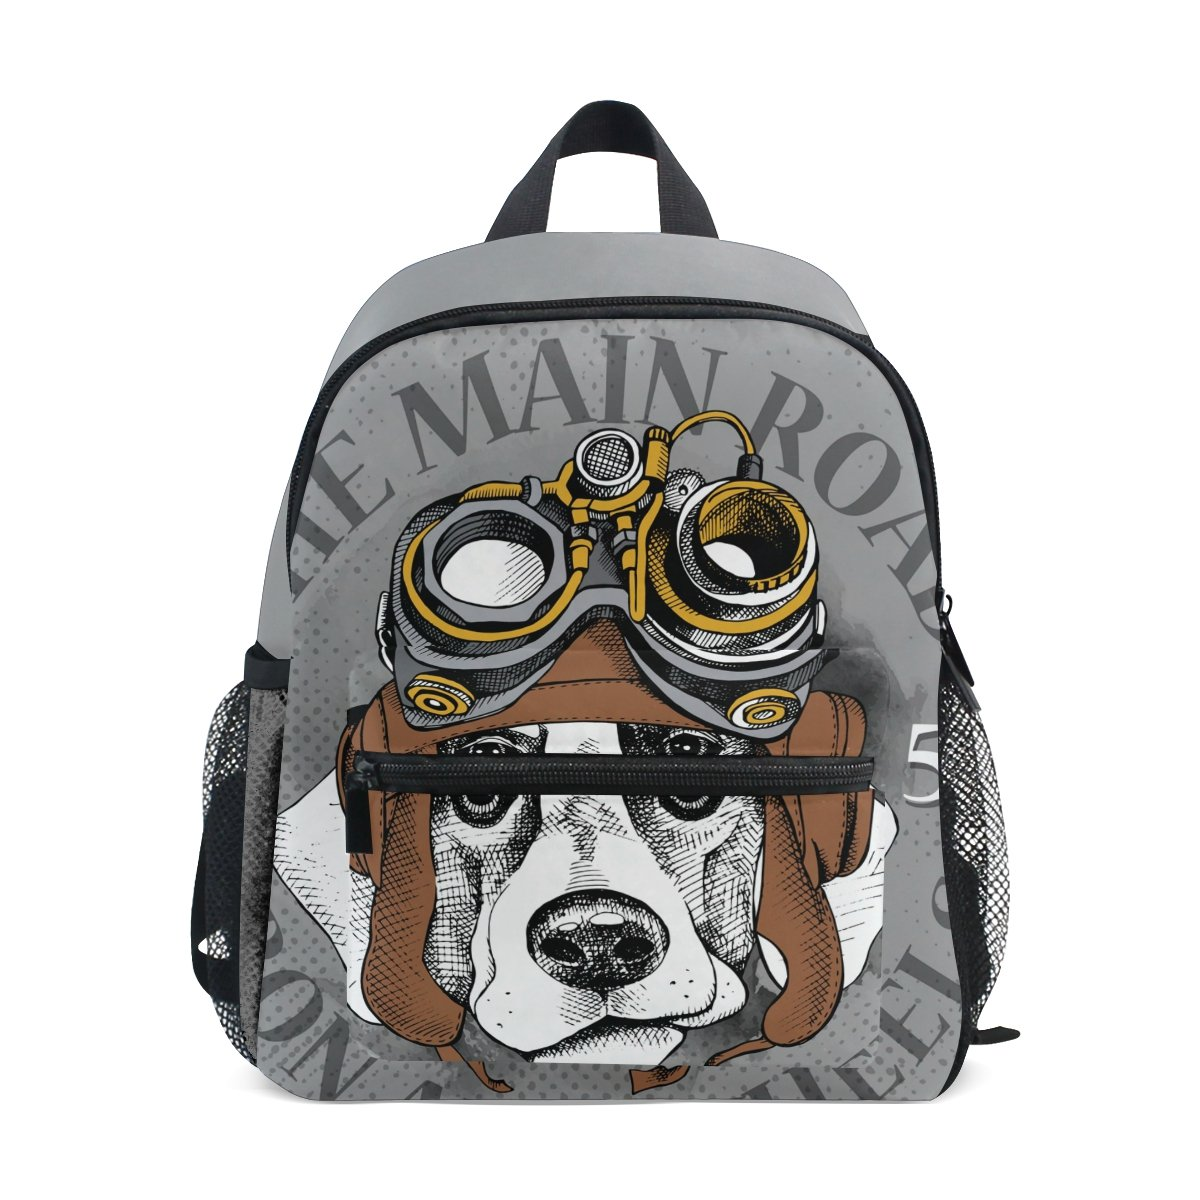 6eedc5c37a8a Amazon.com | Hengpai Cool Dog Design Printed Kids School Backpacks ...